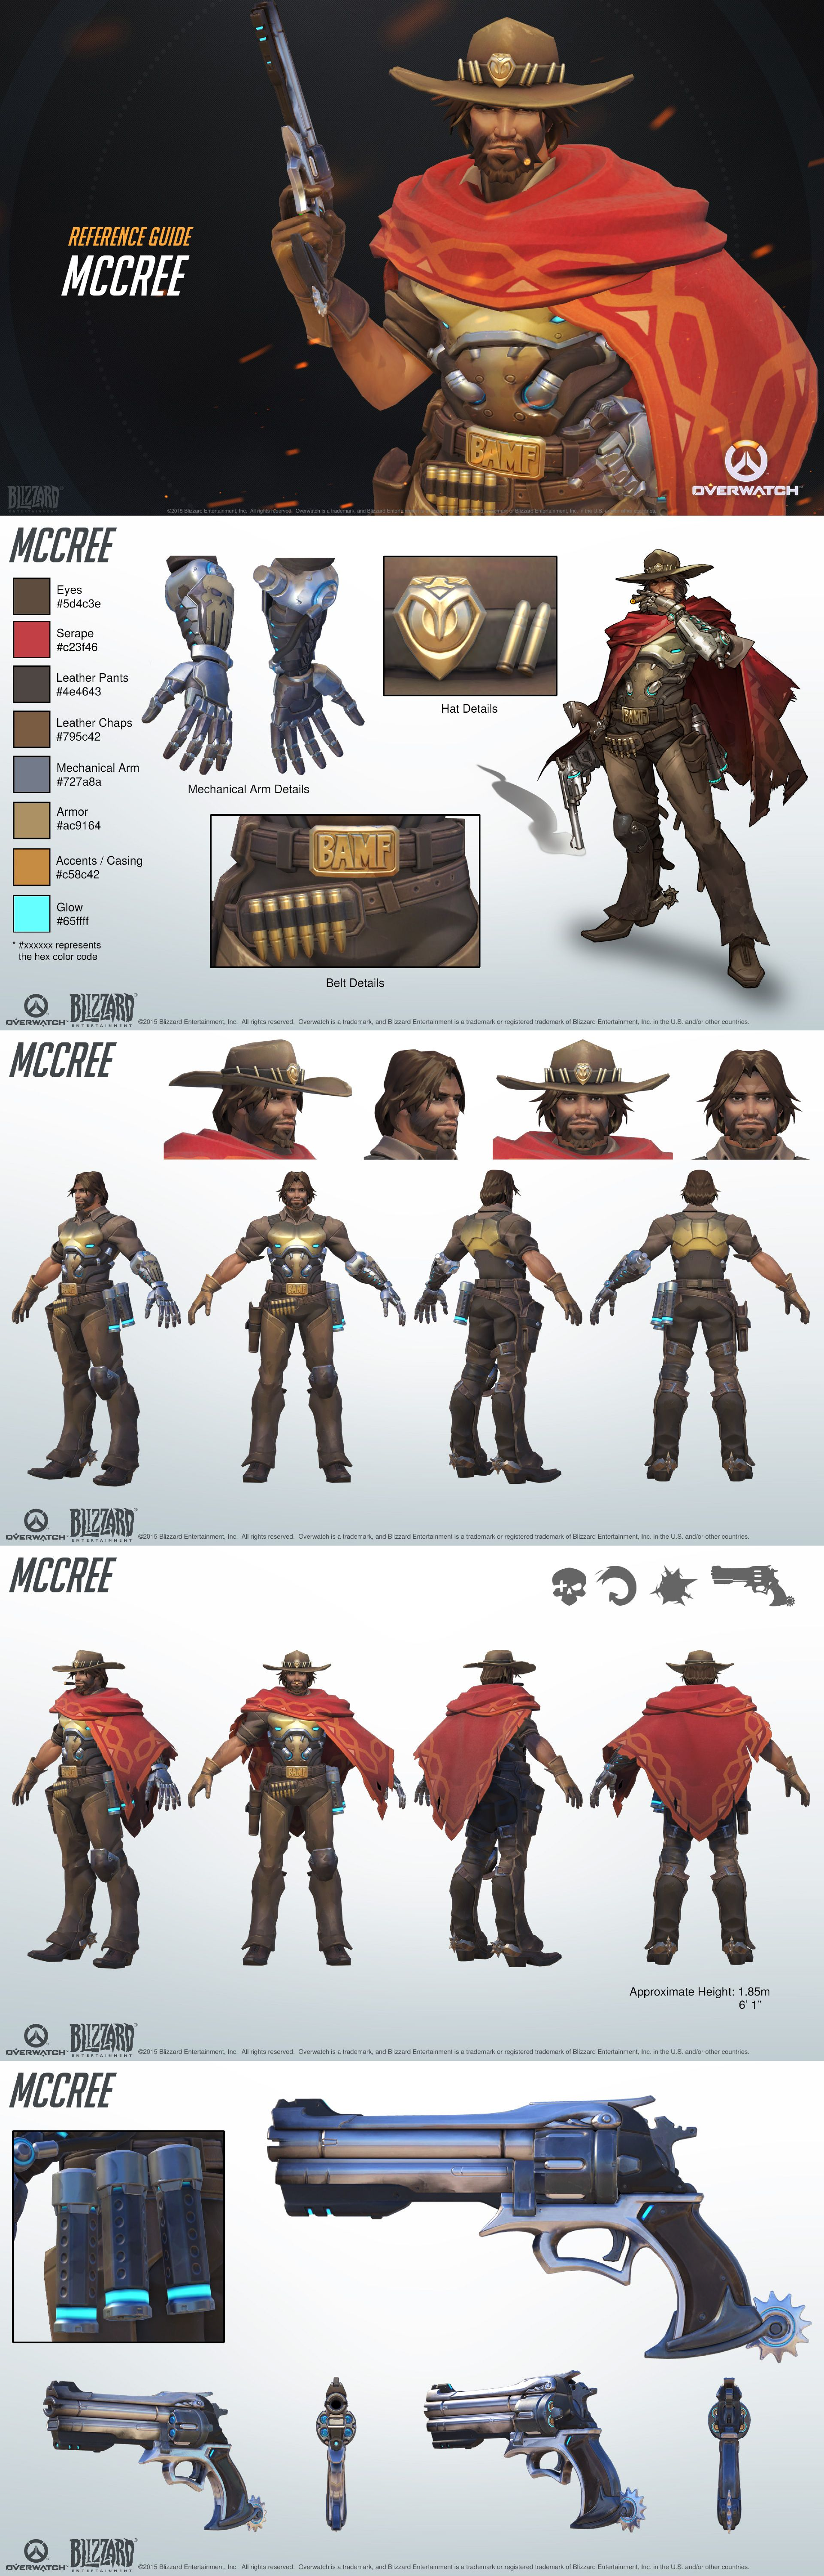 Character Design Overwatch : Overwatch mccree reference guide character sheet